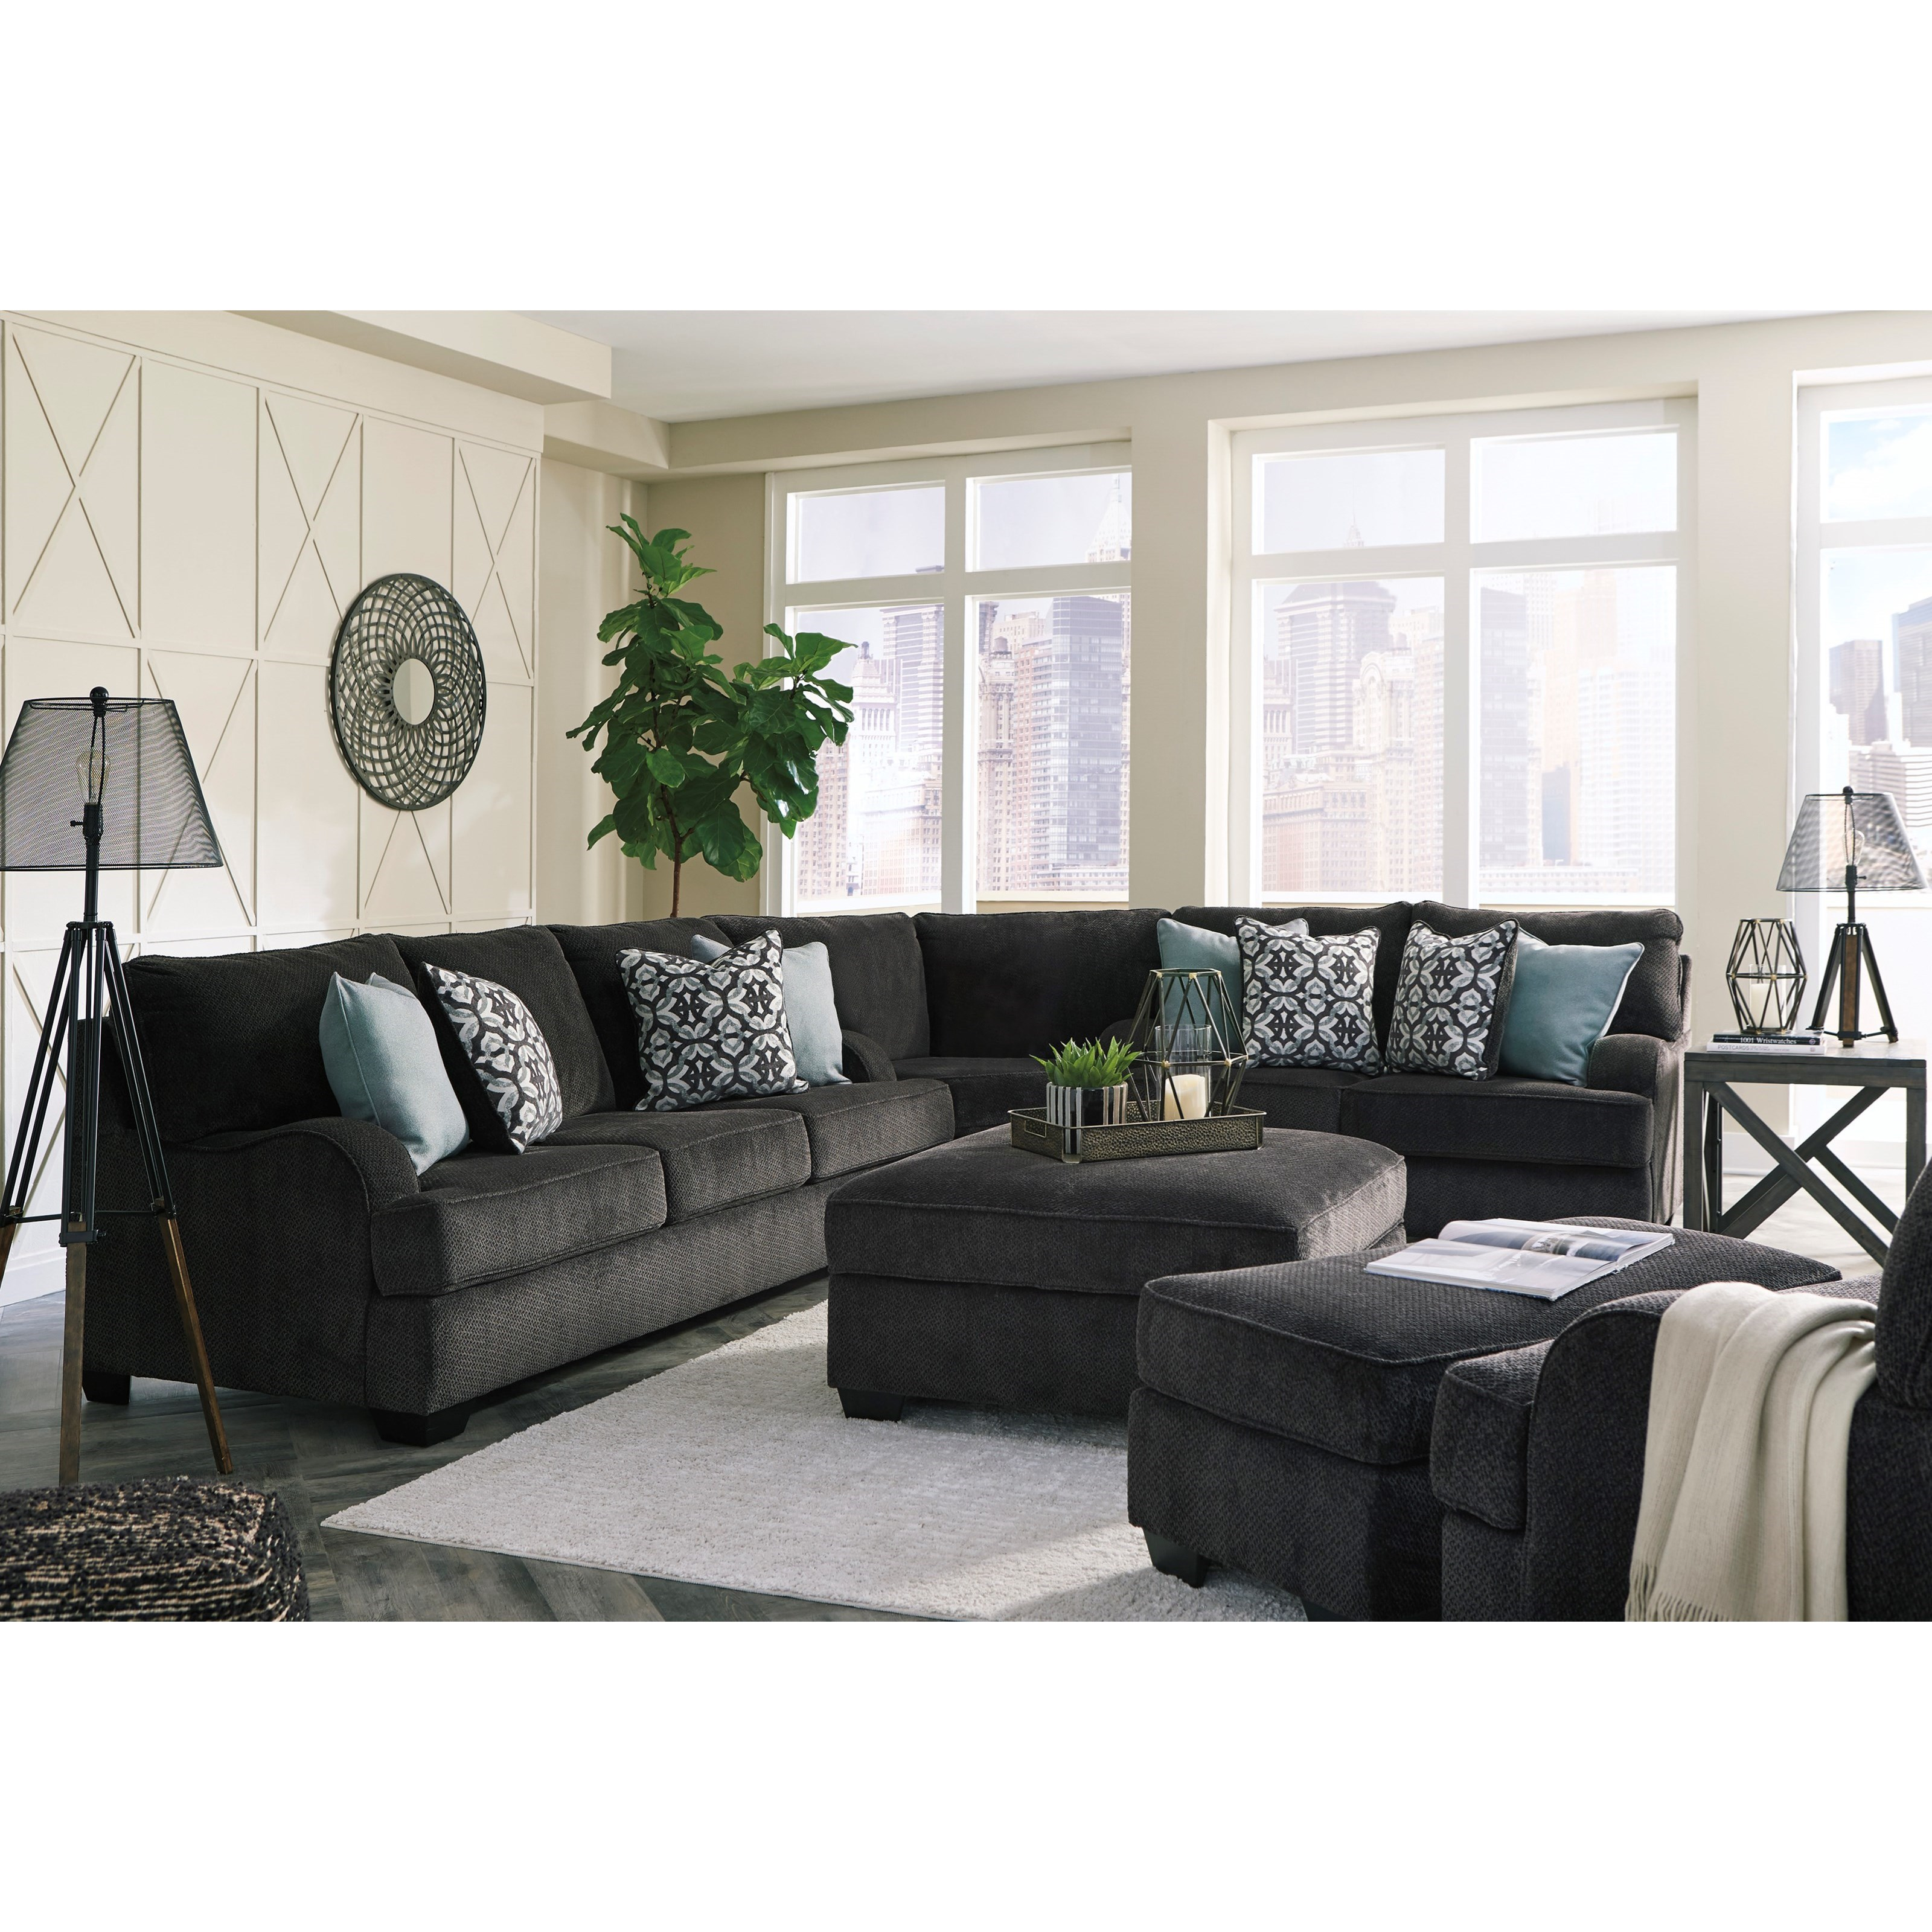 Sectional Sofas By Ashley Furniture: Signature Design By Ashley Charenton Sectional Sofa With